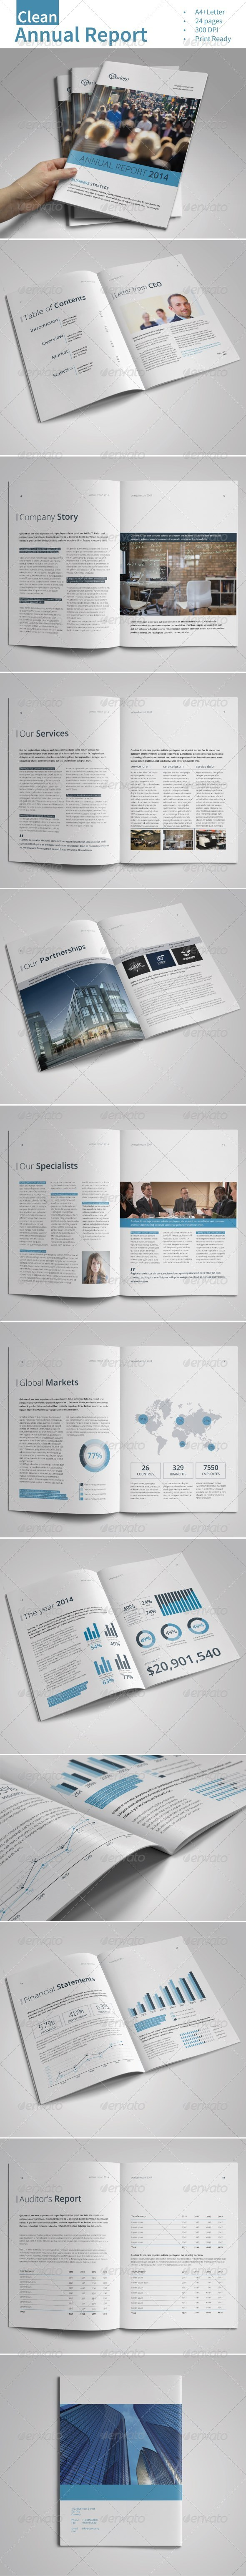 GraphicRiver Clean Annual Report Vol.1 7415225